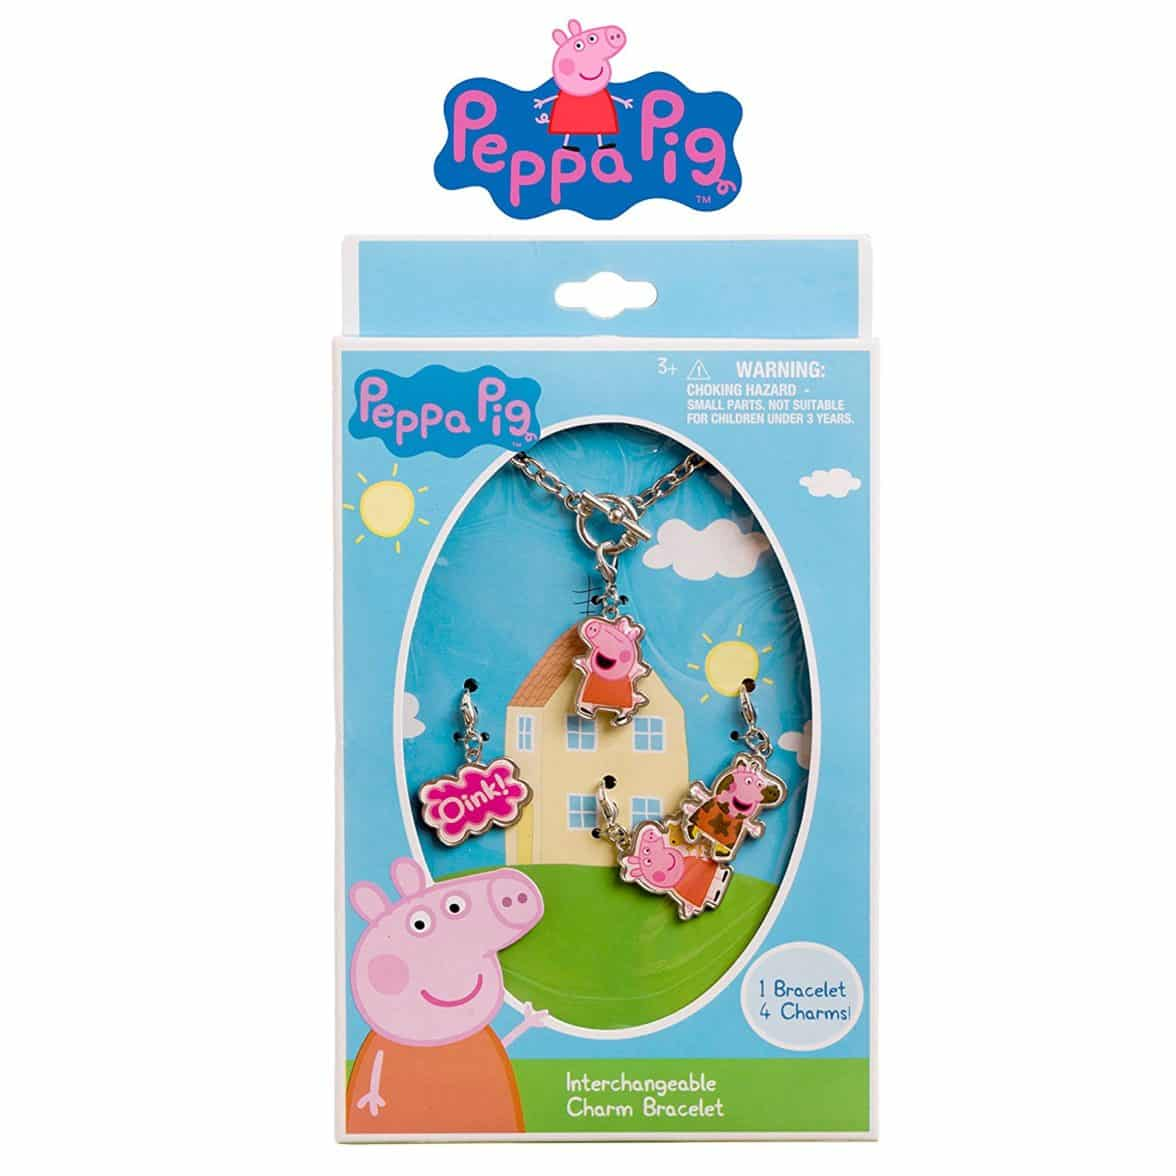 Peppa Pig Girls Add A Charm Bracelet Jewlery Set Silver Chain Charm Bracelet